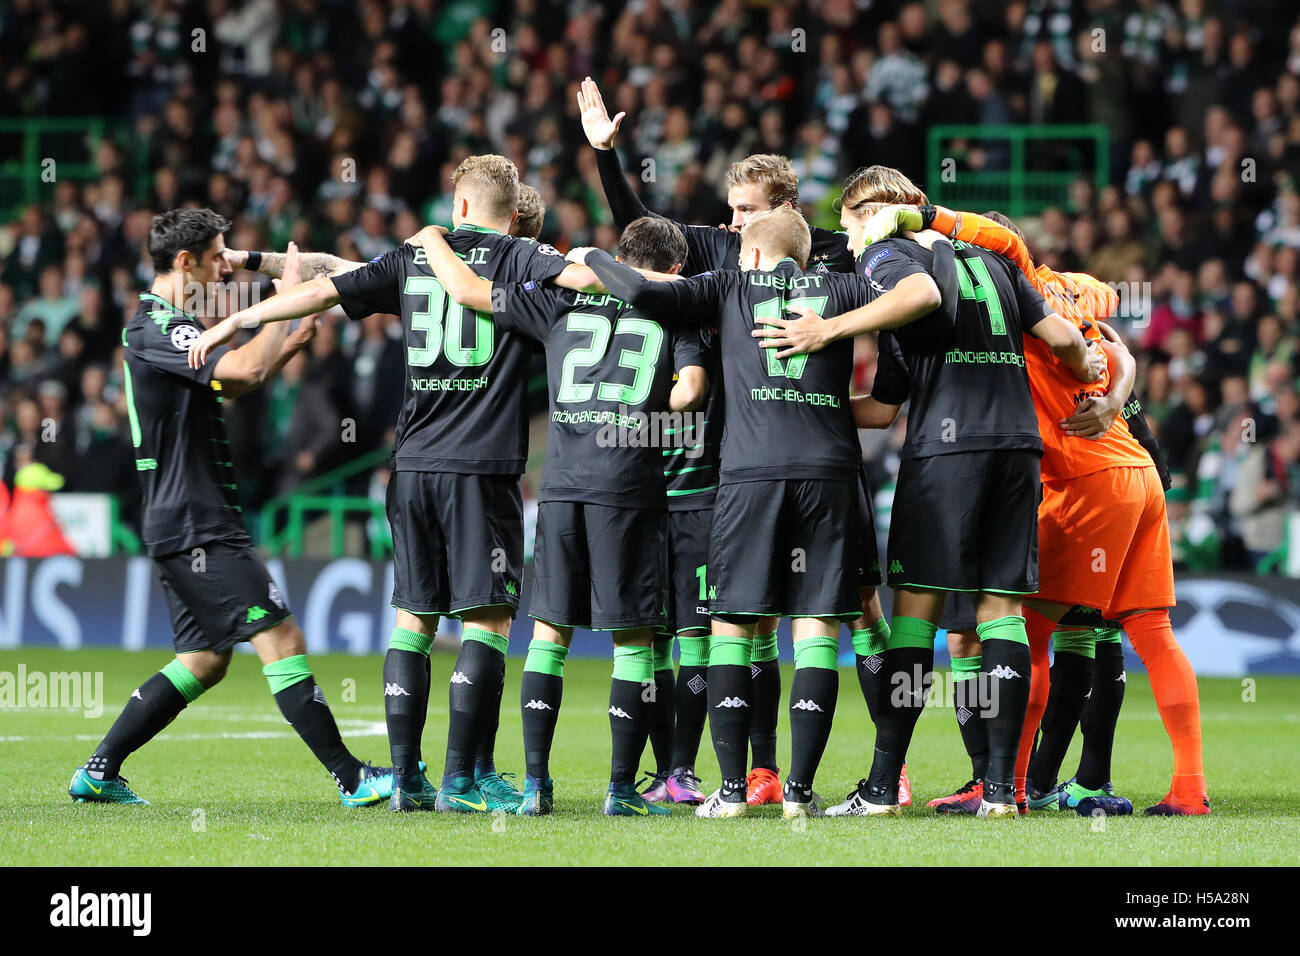 Borussia Monchengladbach s form a group huddle before the UEFA Champions  League match at Celtic Park 78df36d2e